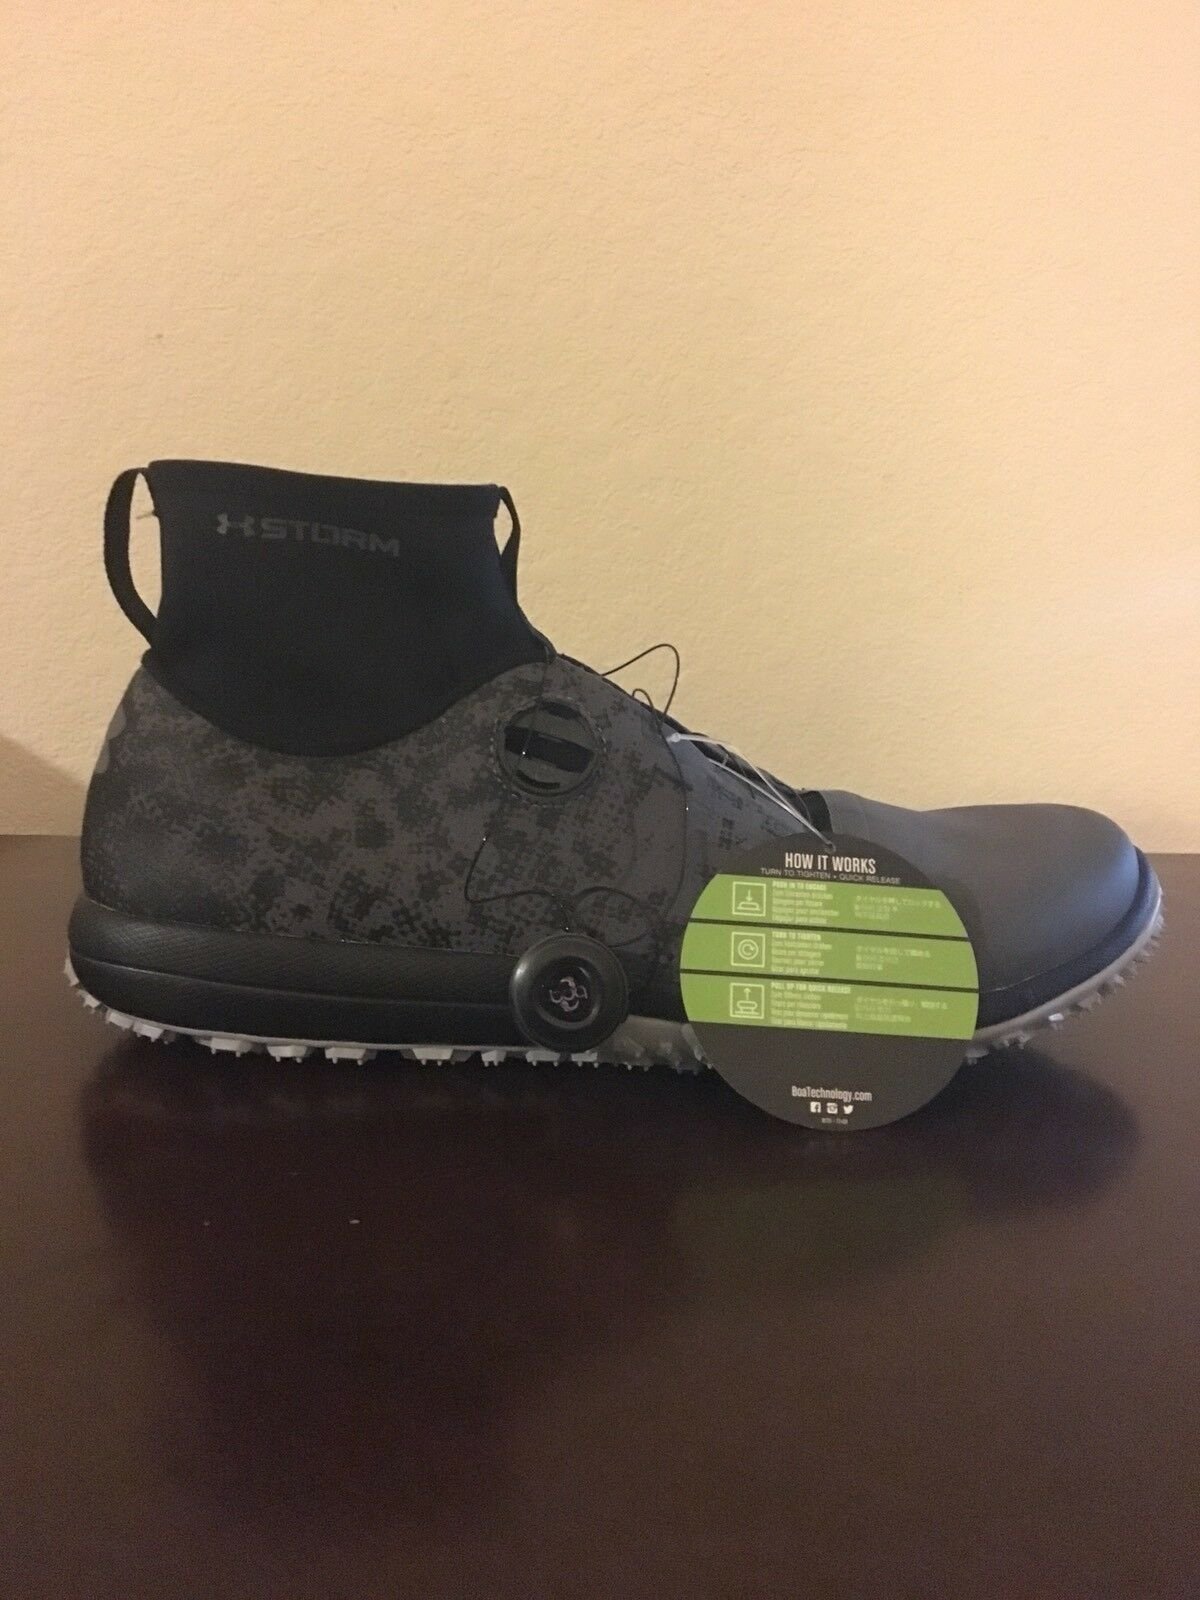 Under Armour Speed Tire Ascent Mid BOA Hiking Chaussures noir gris SZ 12